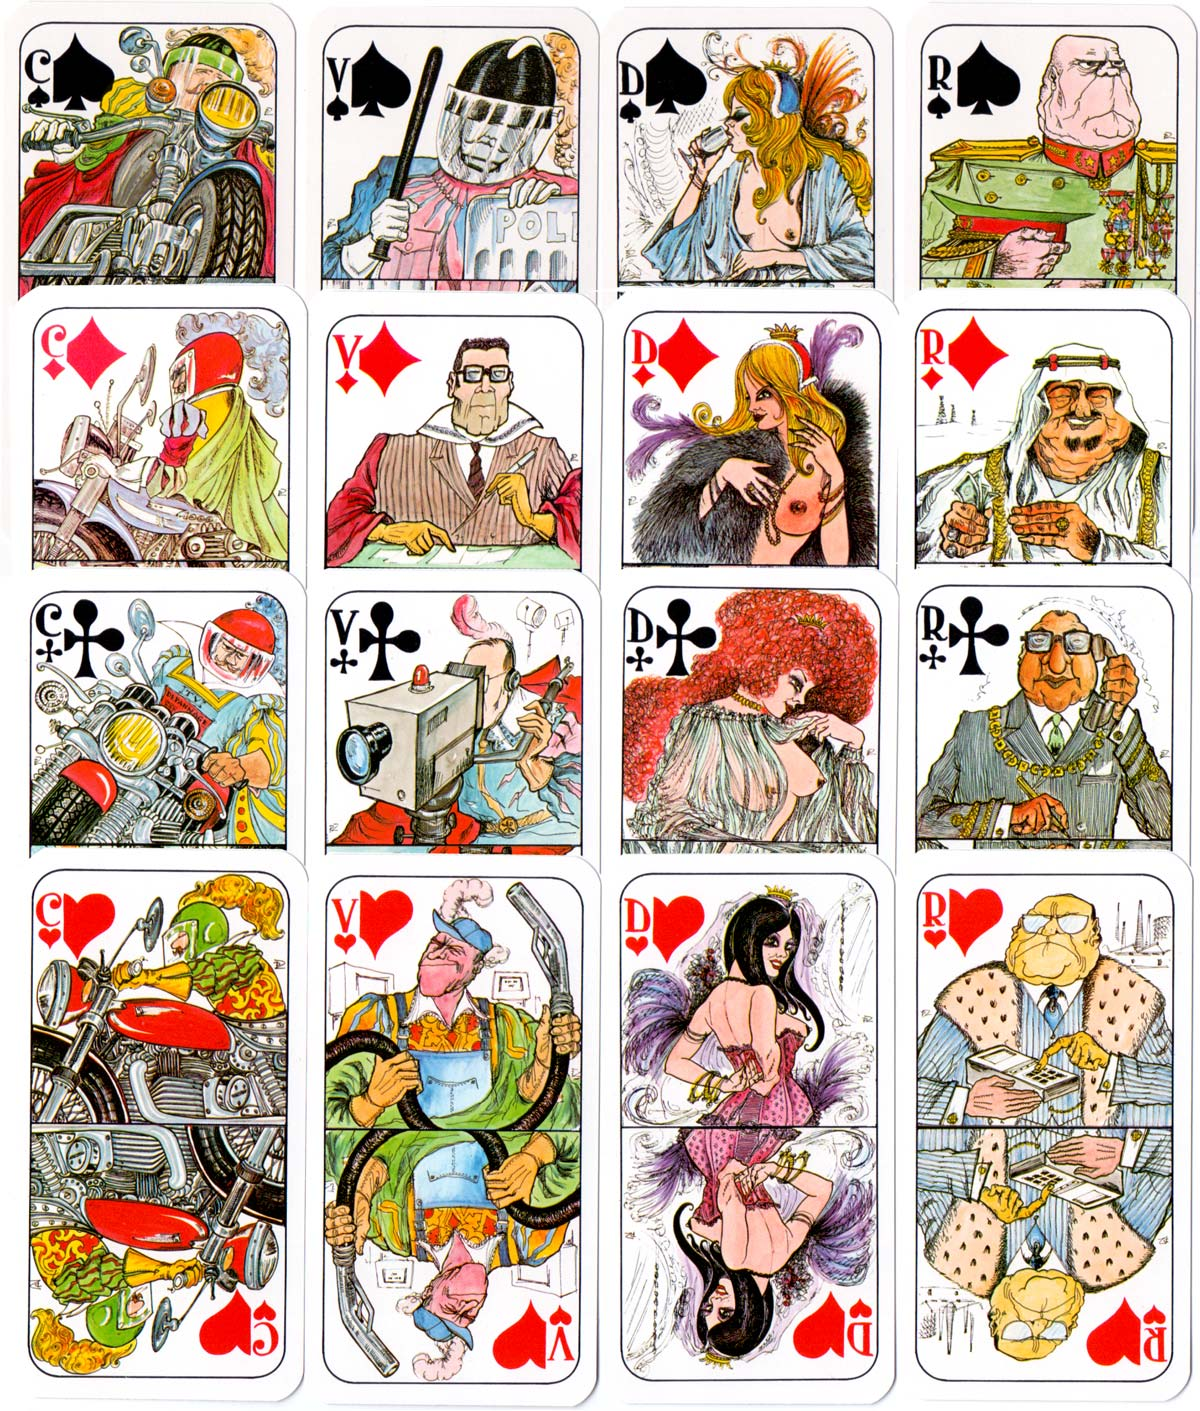 Tarot de l'An 2000 designed by Pino Zac, 1981